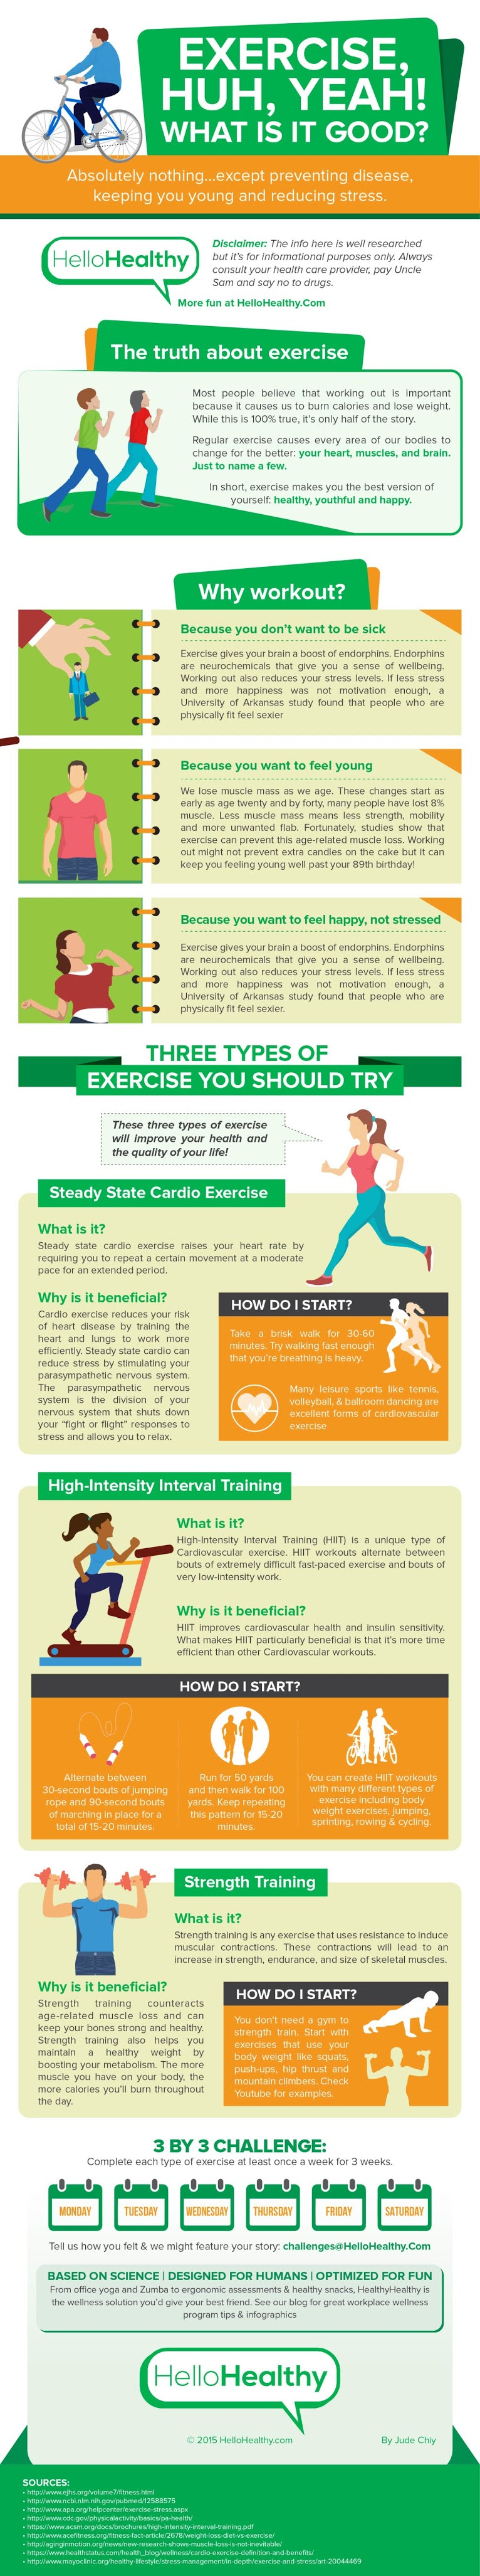 What Is Exercise Good For? #infographic